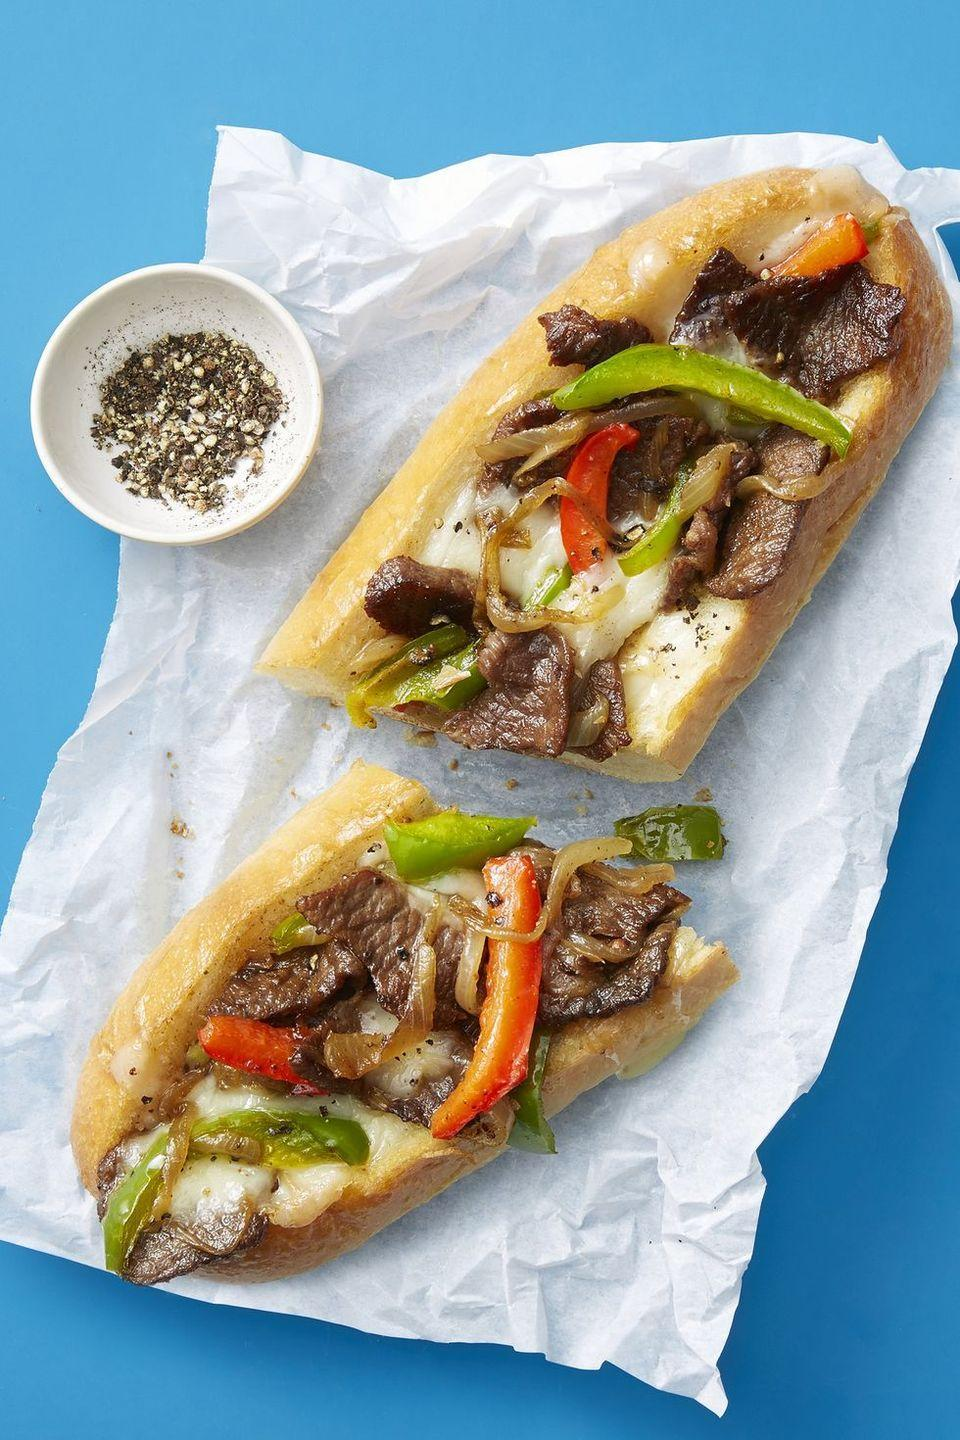 """<p>Who said sandwiches are only good for lunch? This stuffed sub feels like the best of both worlds; a medley of flavors and something fast you can eat with your hands! <br></p><p><em><a href=""""https://www.goodhousekeeping.com/food-recipes/easy/a48190/philly-cheesesteak-recipe/"""" rel=""""nofollow noopener"""" target=""""_blank"""" data-ylk=""""slk:Get the recipe for Philly Cheesesteaks »"""" class=""""link rapid-noclick-resp"""">Get the recipe for Philly Cheesesteaks »</a></em></p>"""